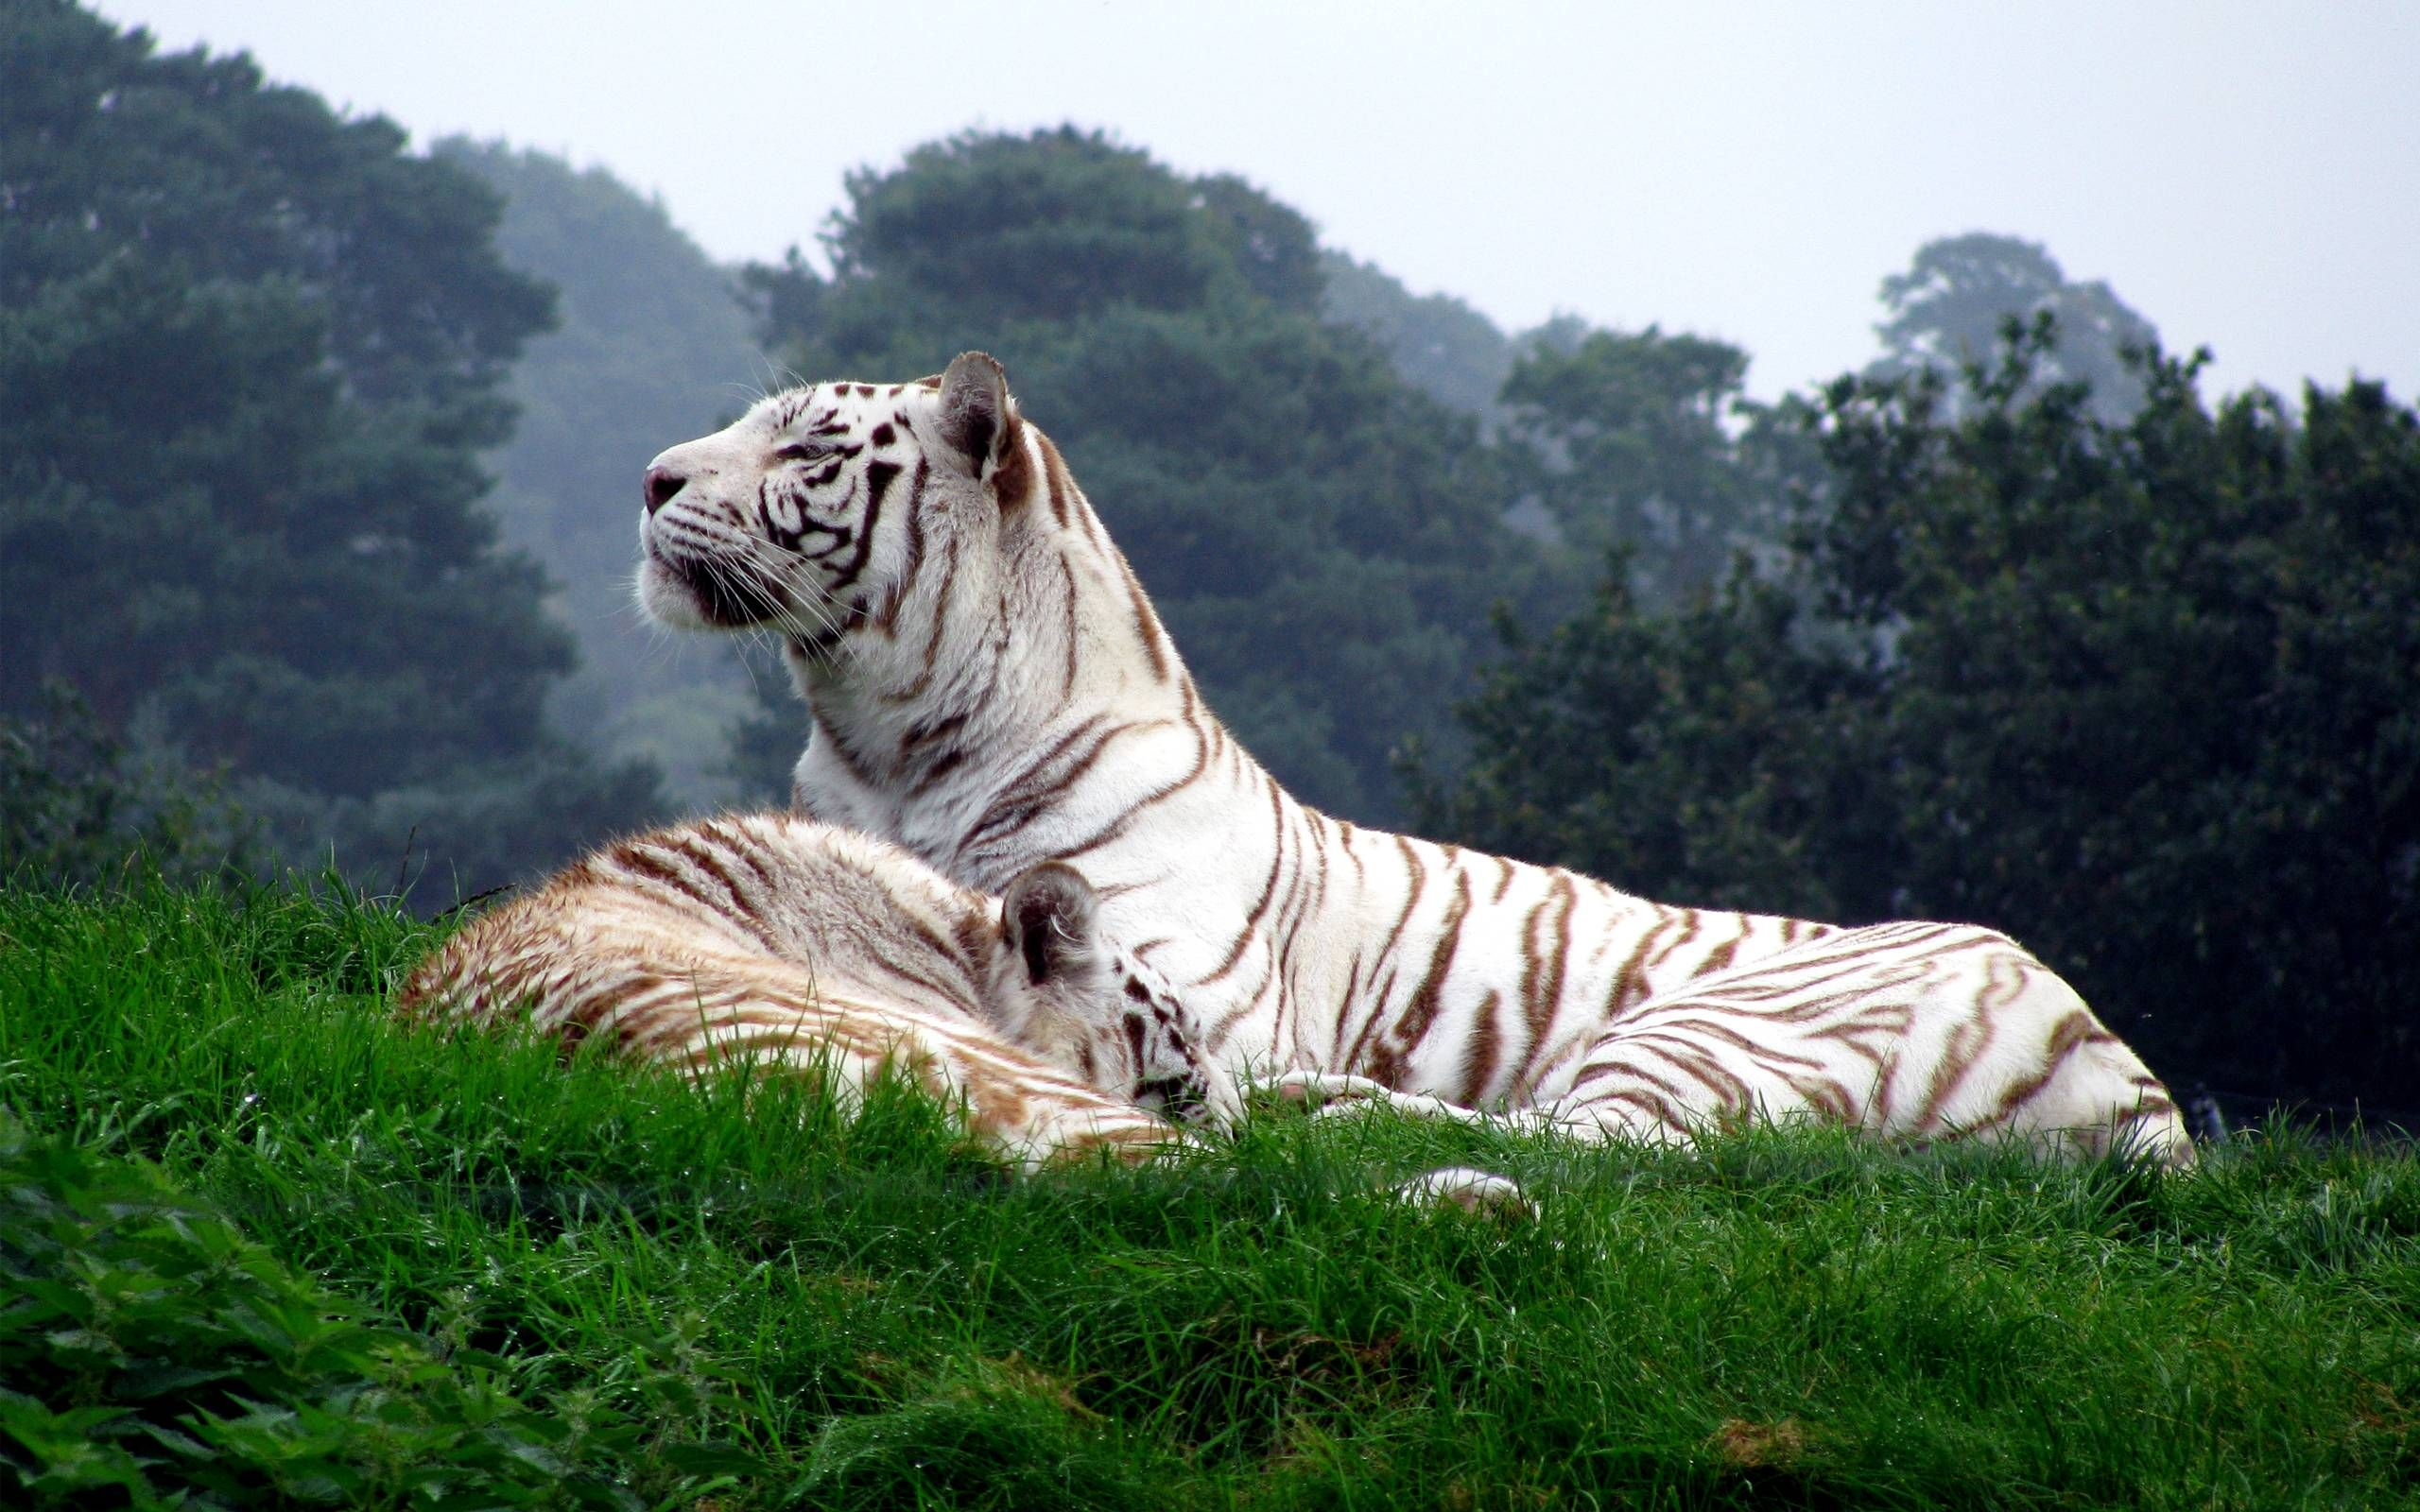 Wonderful Wallpaper High Quality Tiger - 958f7716d73b2af4e7ea774769295a85  Gallery_545458.jpg